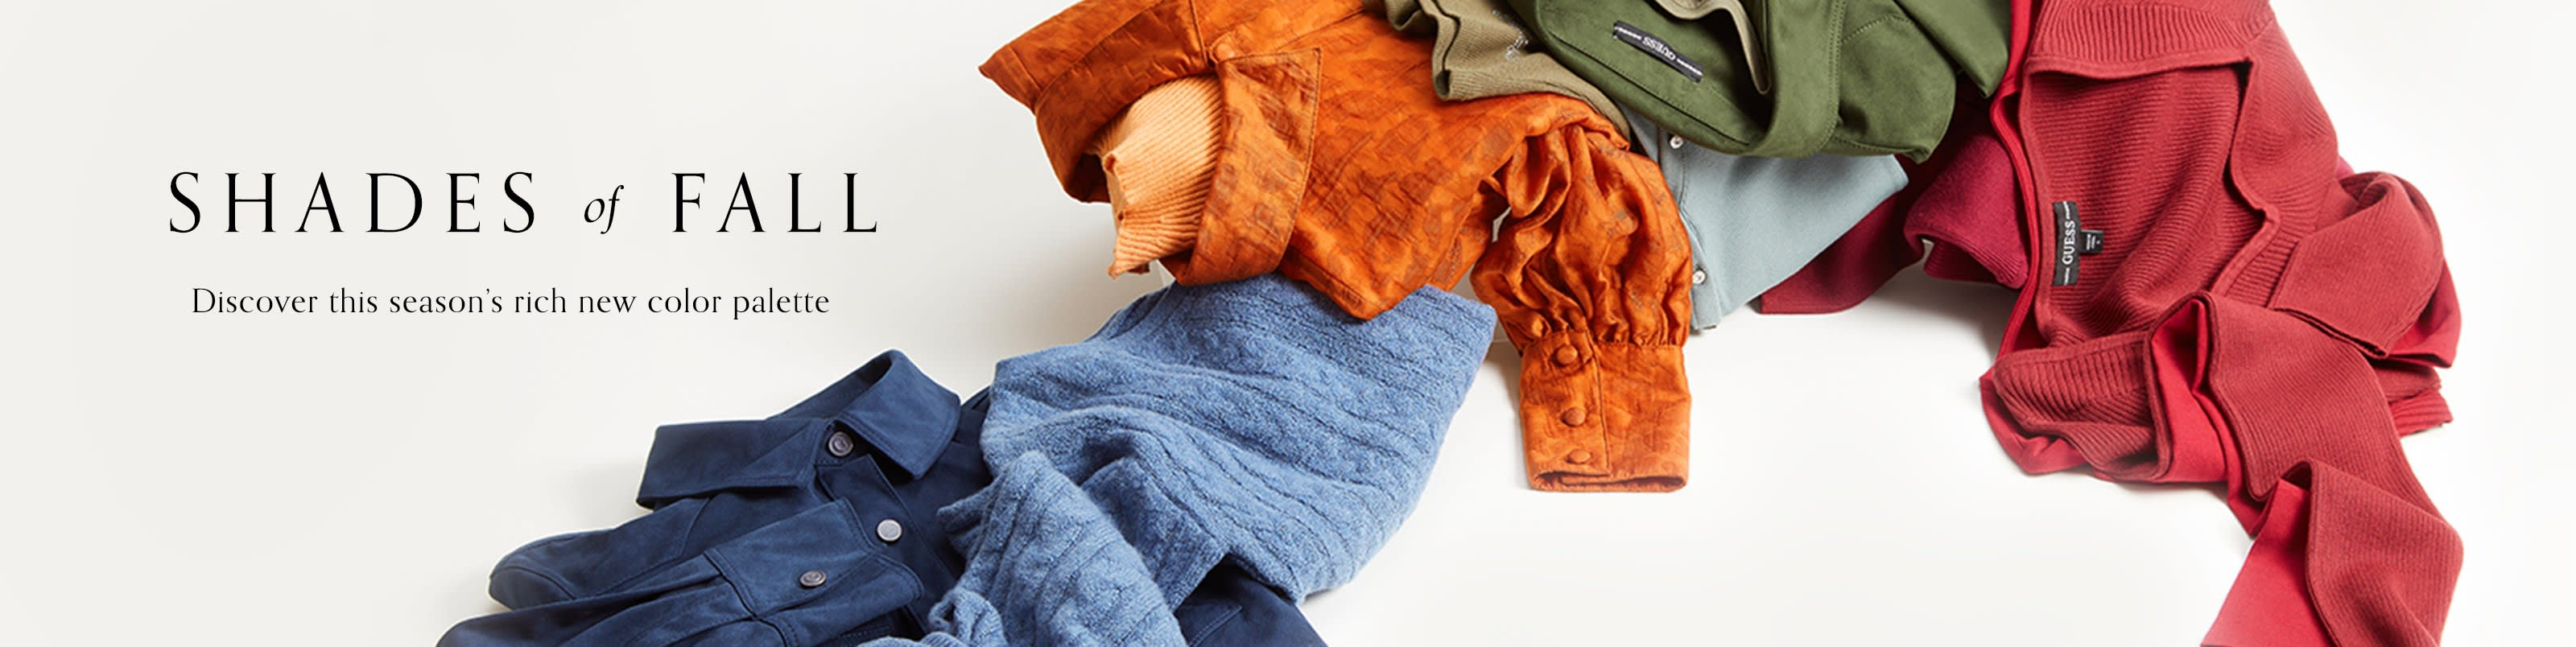 Shades of Fall: Discover this season's rich new color palette